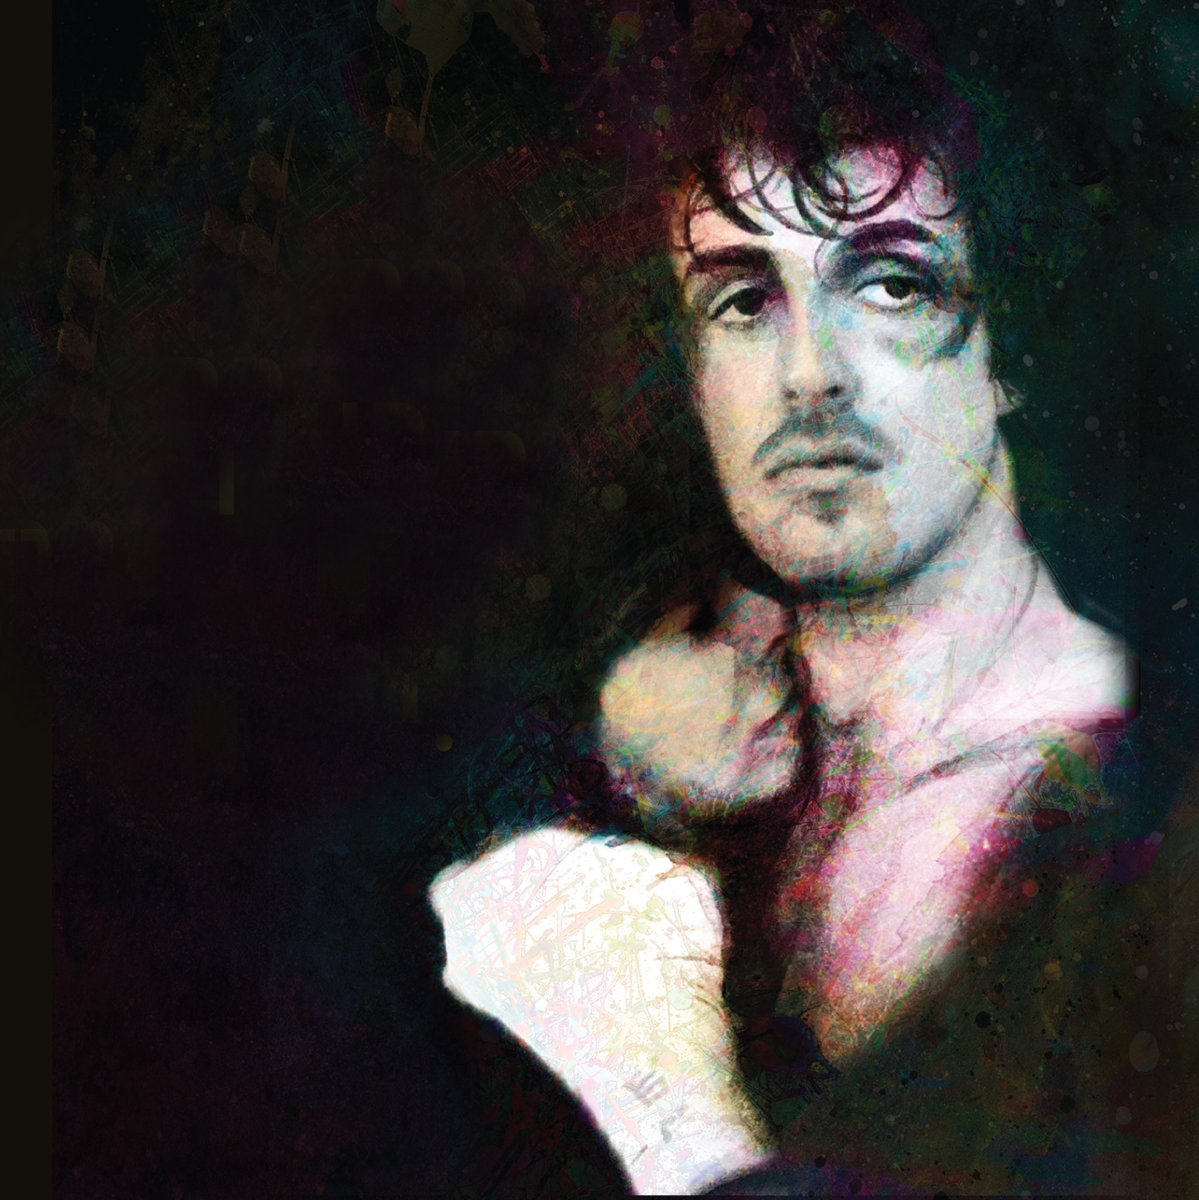 We cannot lose, we cannot be beaten, when love is our prize.  Rocky is a true love story.   Get your Limited Edition Fine art print at http://IconsInArt.com ! #rocky #rockybalboa #slystallone #stallone #artoftheday #fineartpainting  #valentines #adrianpennino #lovestorypic.twitter.com/uZs03uOPKD